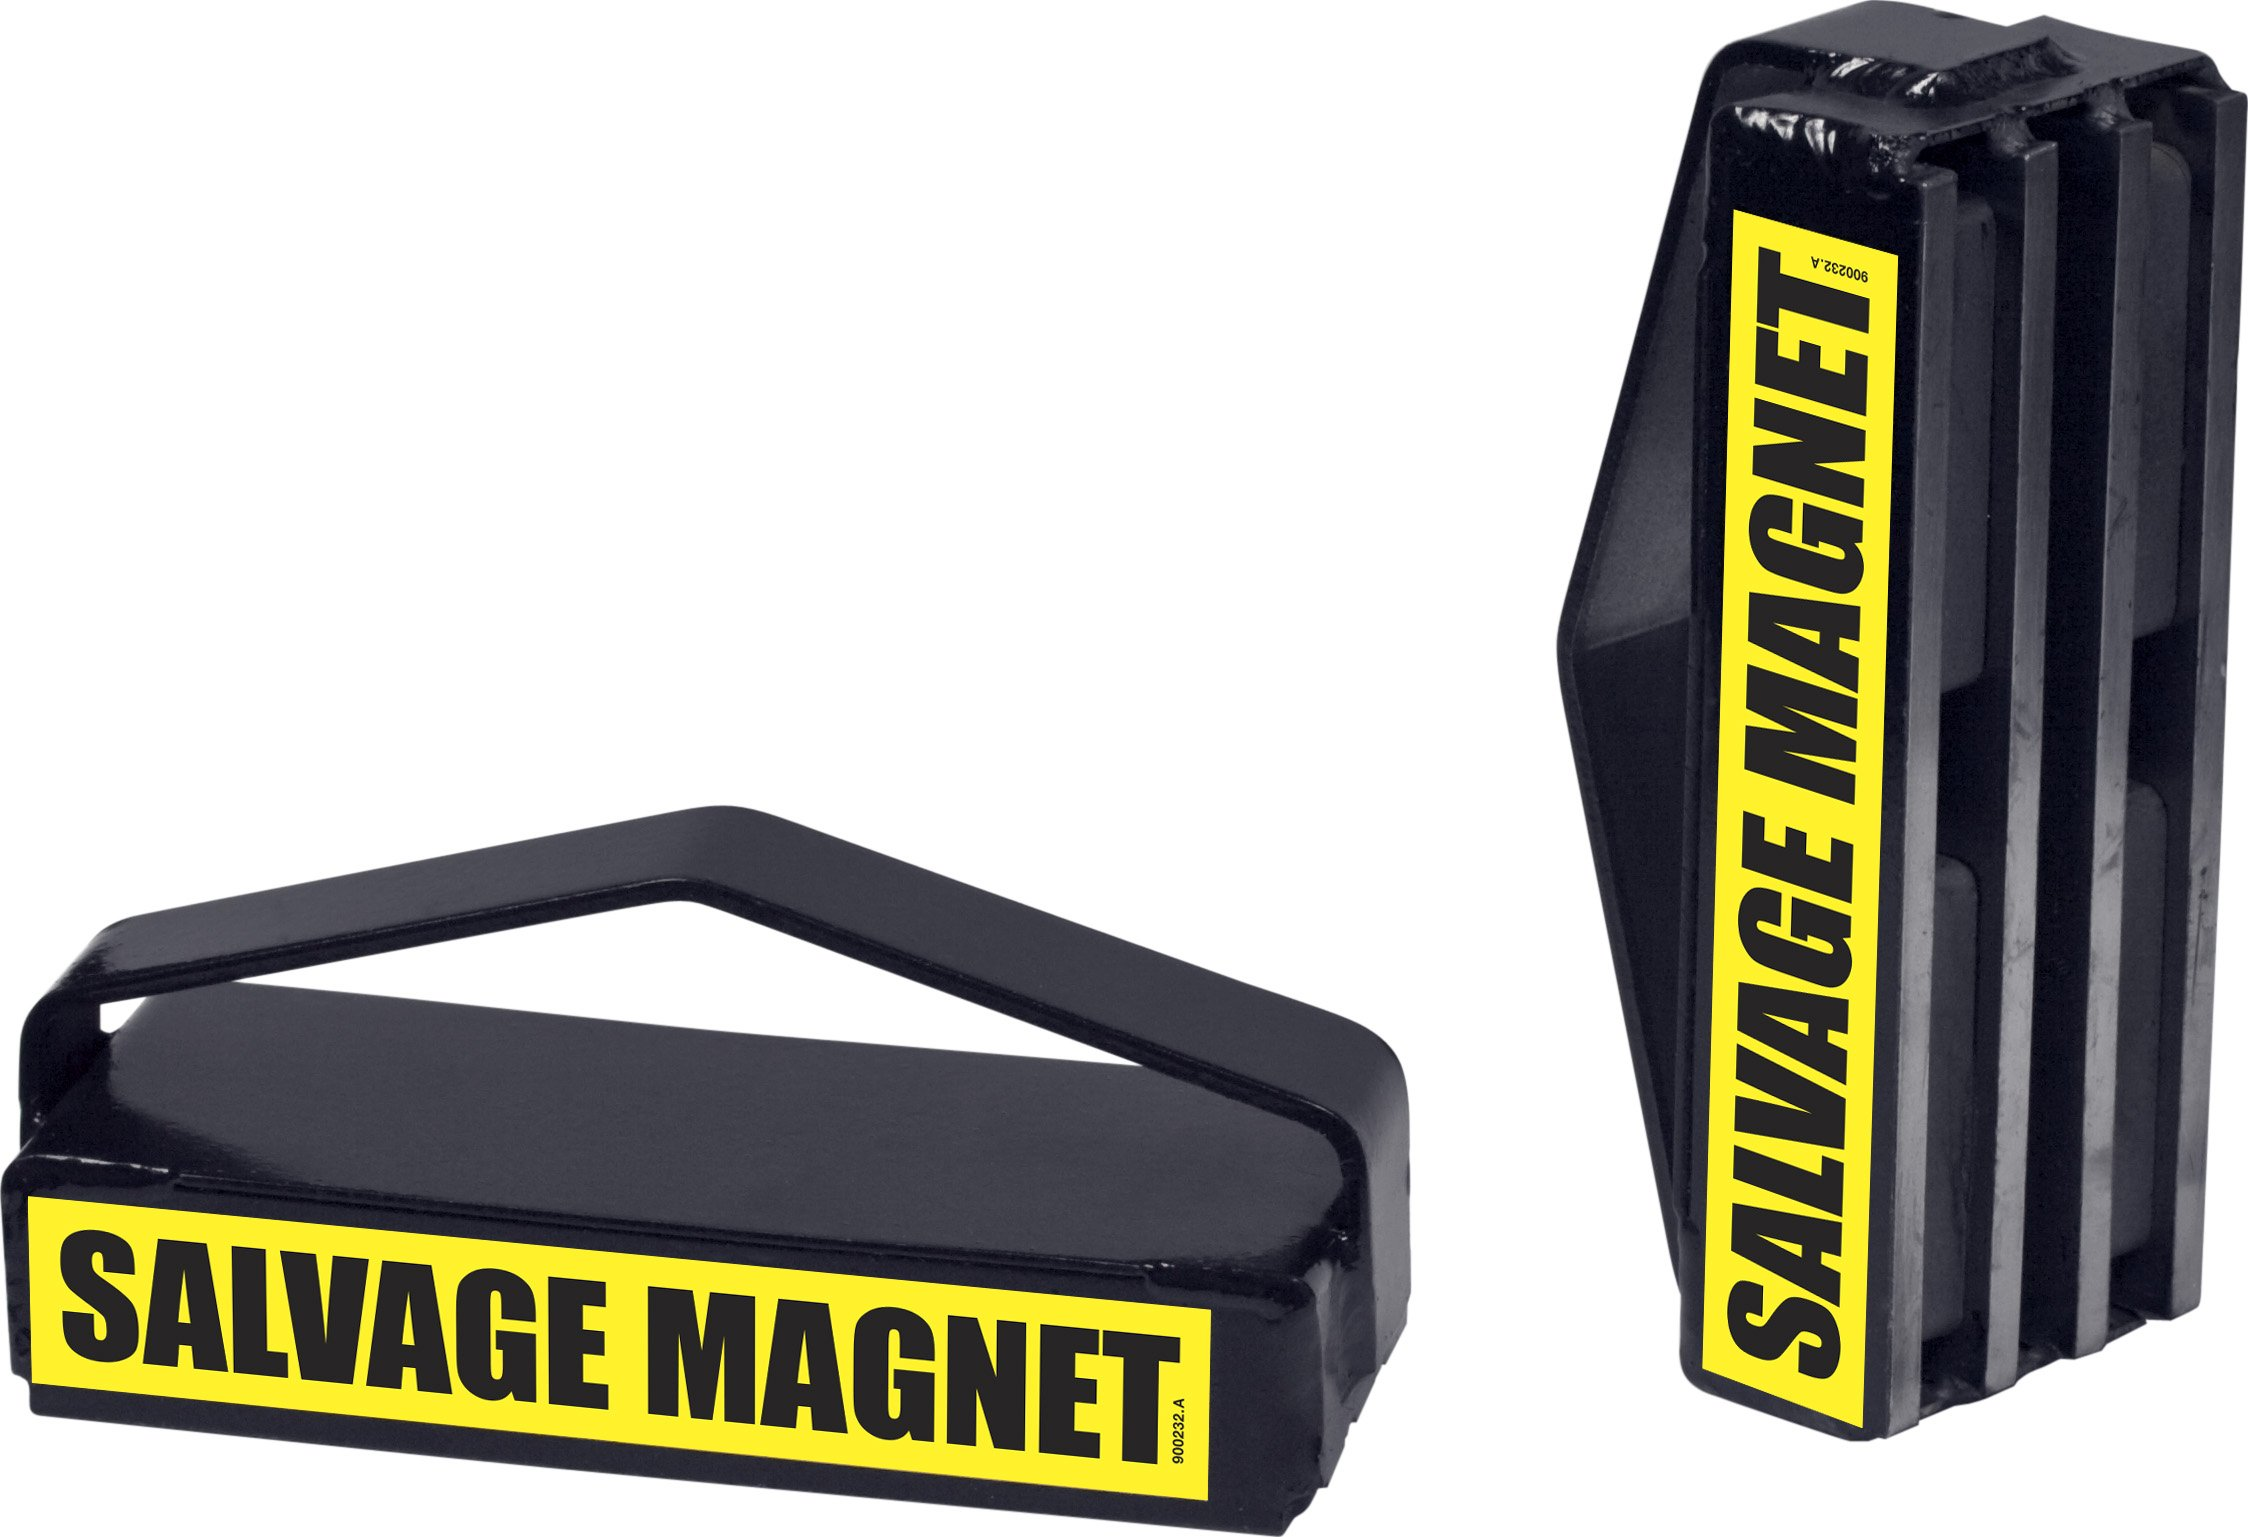 MAG-MATE DT0600 Salvage Magnetic Retriever, 5-1/4''/50 lb